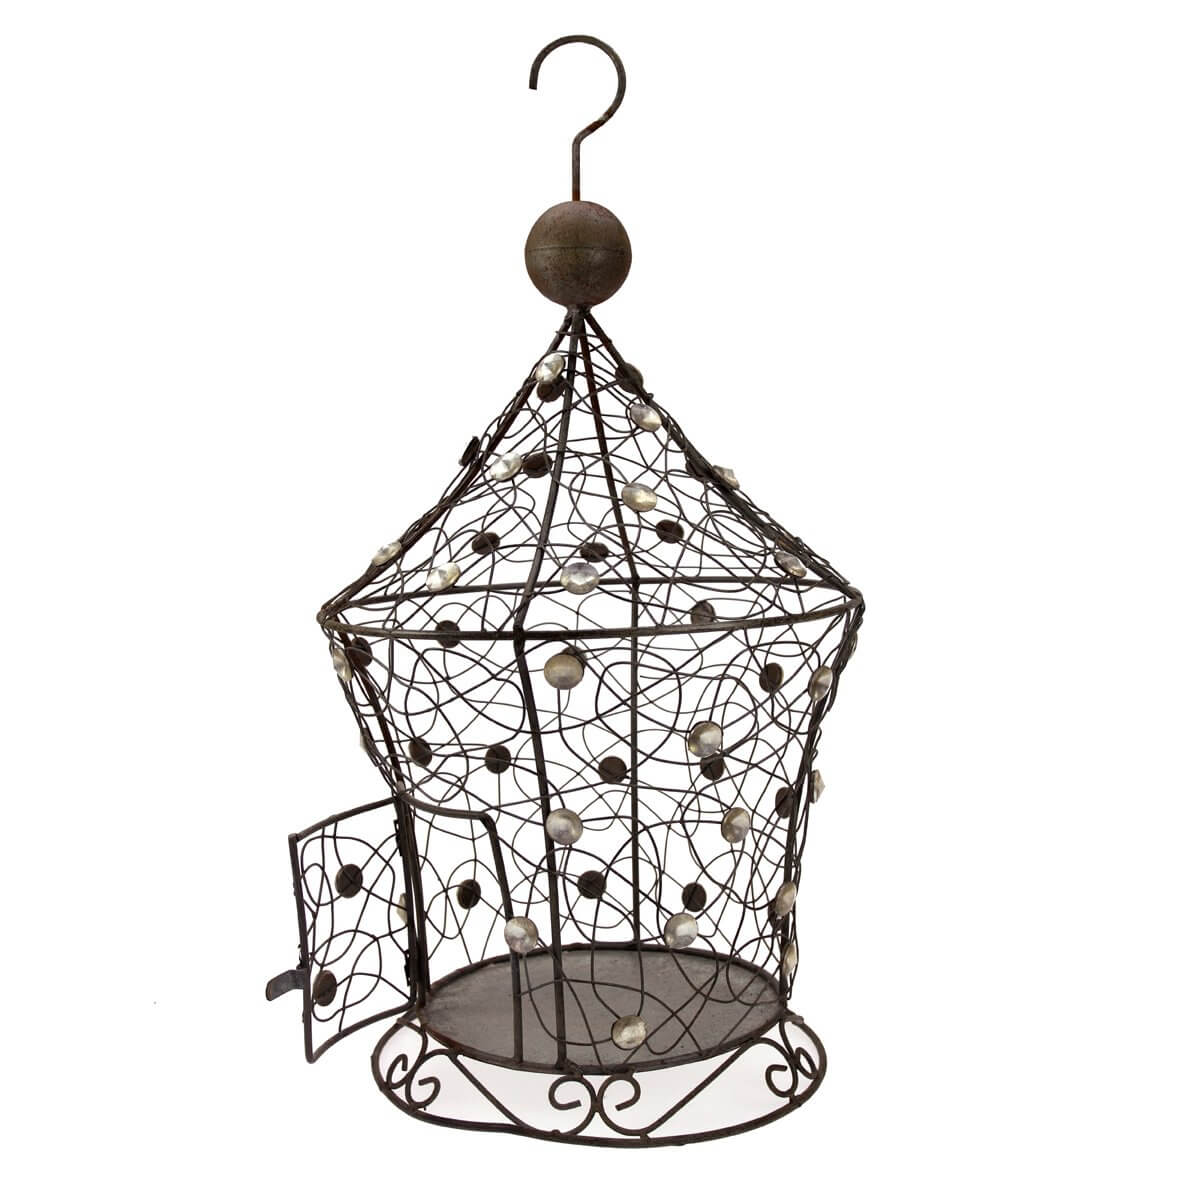 Rustic Birdcage with Pointed Roof